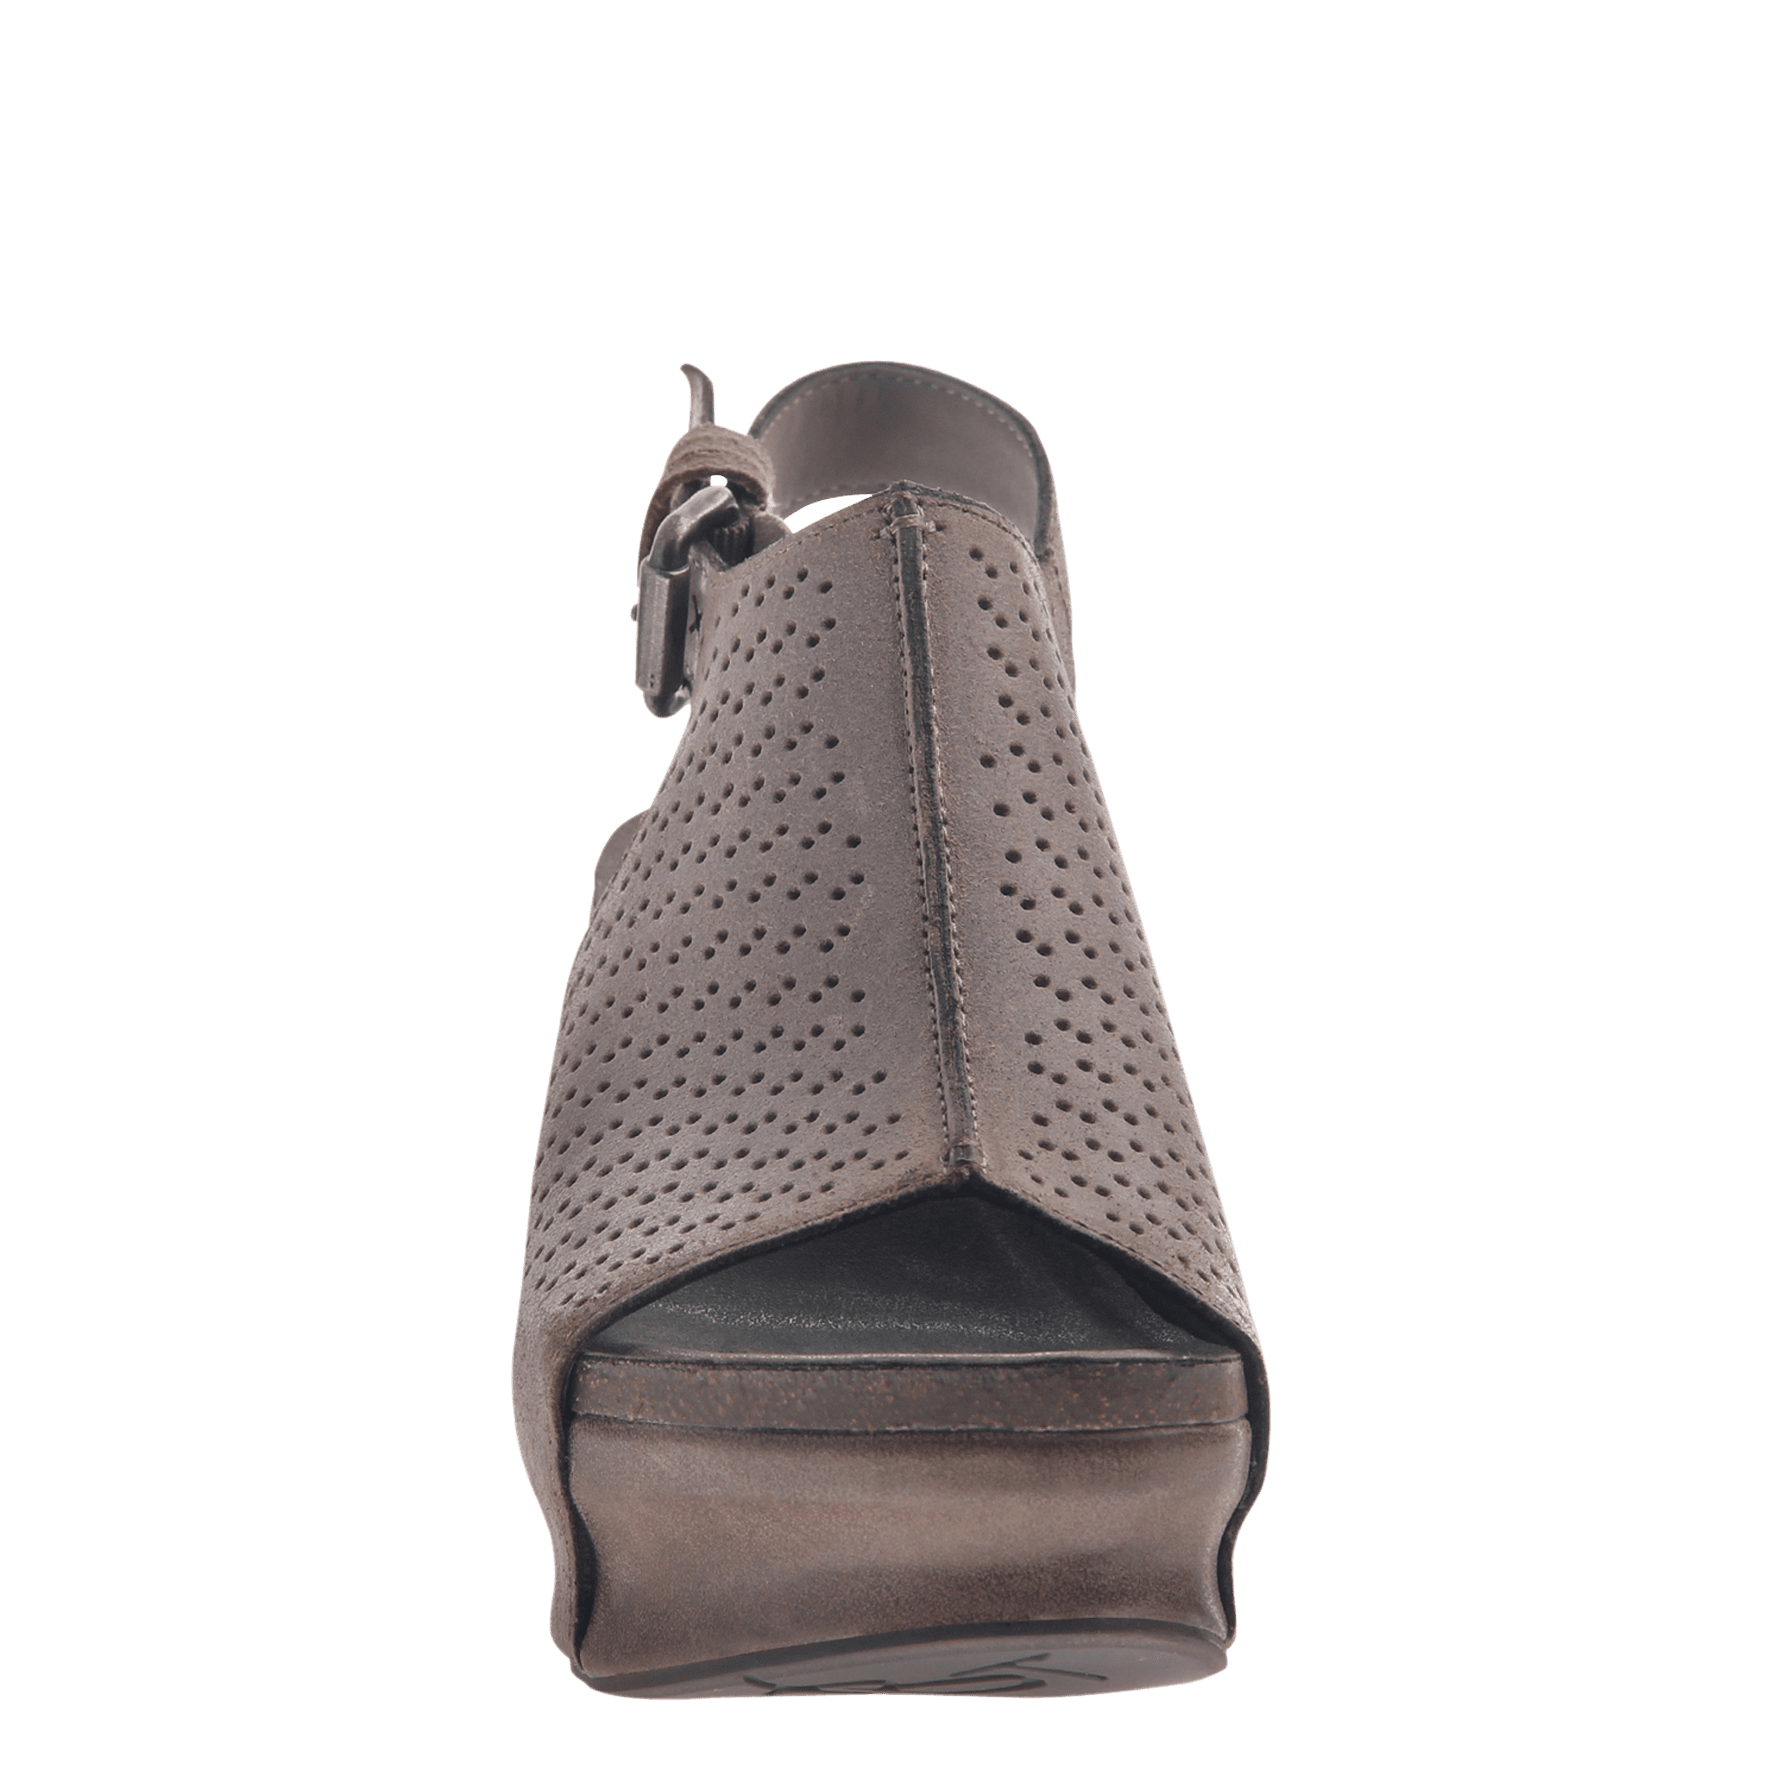 bd6e7a73bde4 Womens platform wedge jaunt in grey pownder front view